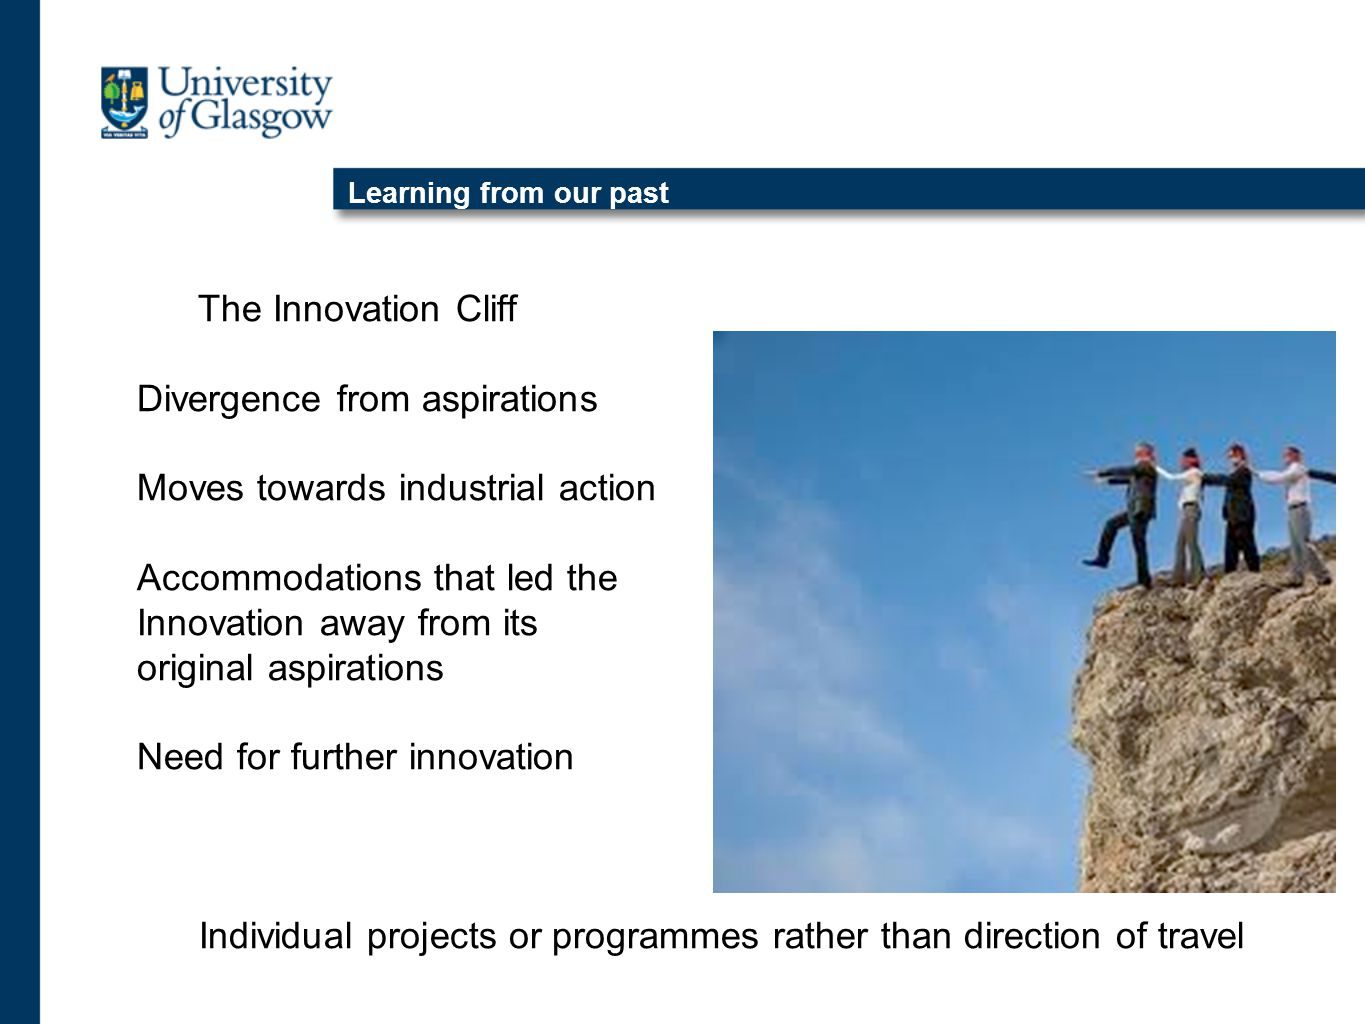 Learning from our past The Innovation Cliff Divergence from aspirations Moves towards industrial action Accommodations that led the Innovation away from its original aspirations Need for further innovation Individual projects or programmes rather than direction of travel